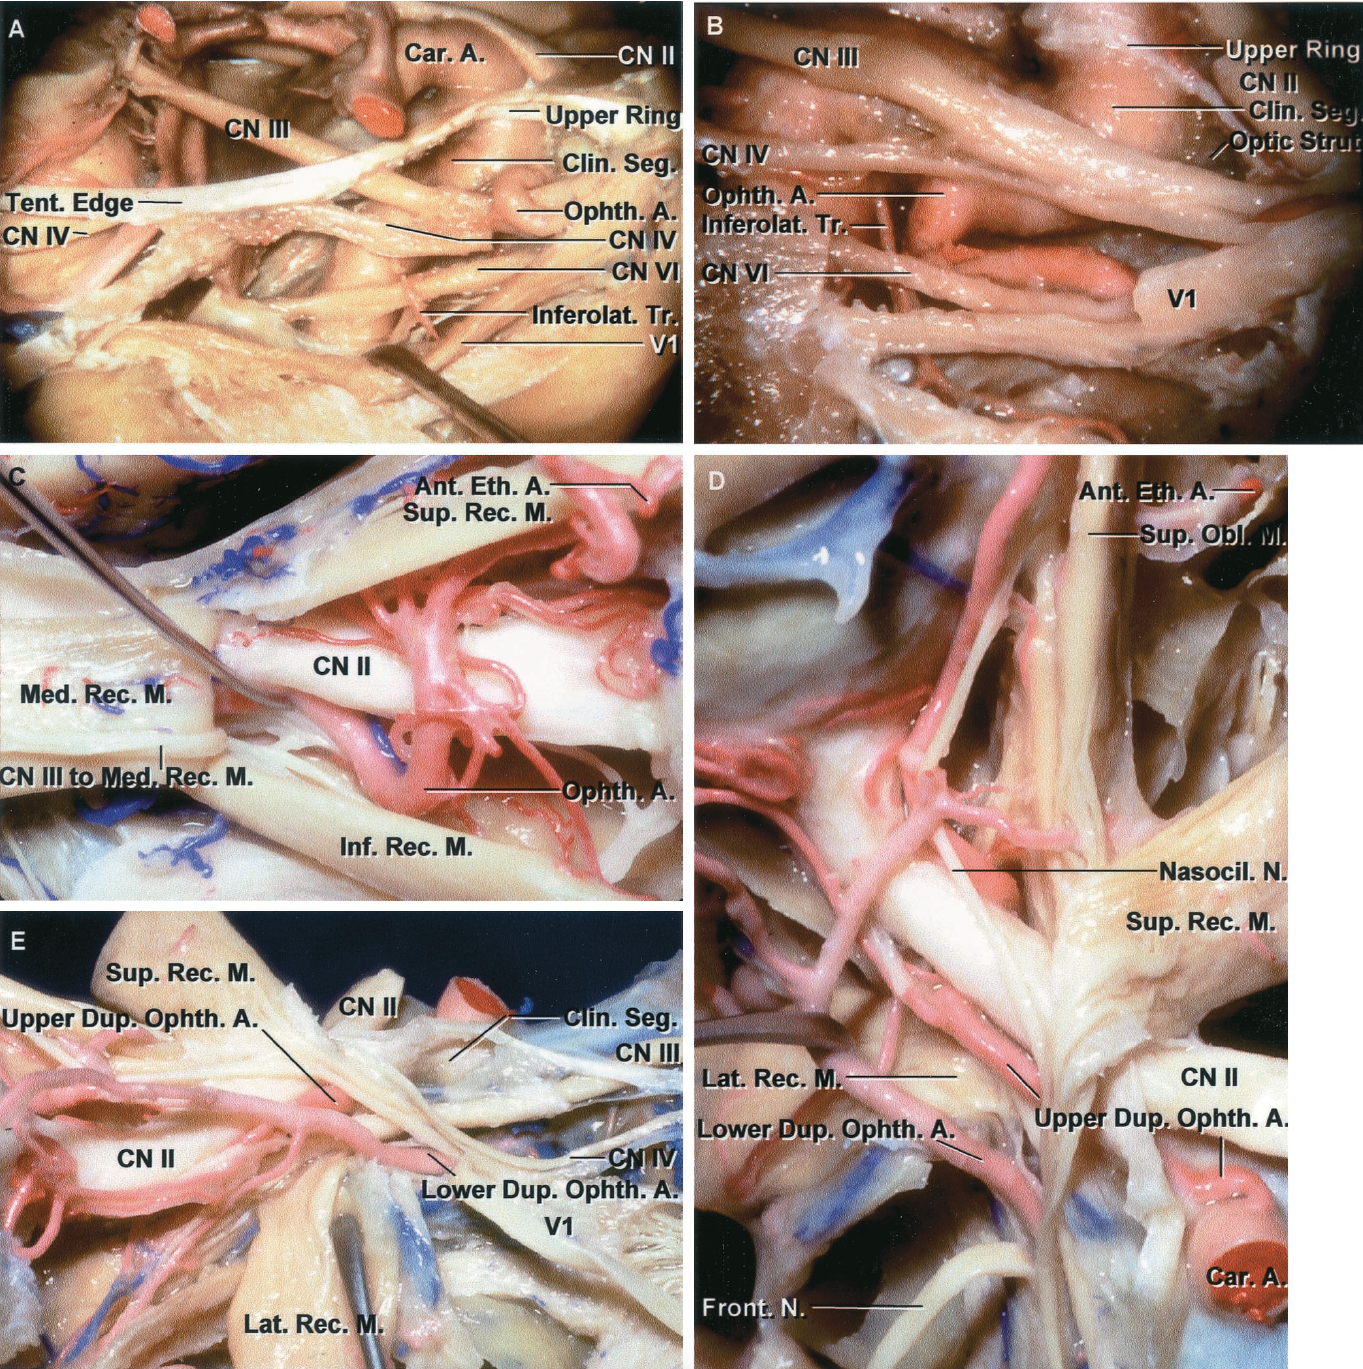 FIGURE 7.6. Anomalies of the ophthalmic artery. A, right ophthalmic artery origin from the clinoid segment of the internal carotid artery. The ophthalmic artery usually arises just above the clinoid segment, but in this case, the artery arises from the clinoid segment below the anterior clinoid process, which has been removed. The artery passes through the superior orbital fissure between the oculomotor and ophthalmic nerves. The lateral wall of the right cavernous sinus and the anterior clinoid process have been removed to expose the intracavernous and clinoid segments of the internal carotid artery, and the ophthalmic nerve has been retracted to expose the inferolateral trunk. B, ophthalmic artery origin in the cavernous sinus. Lateral aspect of a right ophthalmic artery that arises from the intracavernous segment of the left internal carotid artery. The upper half of a segment of the ophthalmic nerve has been removed to expose an ophthalmic artery. The anterior clinoid artery has been removed to expose the clinoid segment in the interval between the optic and oculomotor nerves. C, the medial rectus muscle has been divided near the globe and reflected posteriorly to expose an ophthalmic artery that courses below the optic nerve to reach the medial part of the orbit, as occurs in approximately 15% of orbits. The branch of the inferior division of the oculomotor nerve to the medial rectus muscle enters the medial side of the muscle. The anterior ethmoidal artery courses below the superior oblique muscle to reach the anterior ethmoidal canal. D and E, duplicate left ophthalmicarteries. D, superior aspect of a duplicate ophthalmic artery. The levator and superior rectus muscles have been reflected medially and the lateral rectus muscle has been reflected laterally to expose the left optic nerve and the duplicate arteries. The upper duplicate artery arises from the supraclinoid segment of the internal carotid artery, passes through the optic canal to enter the orbital 